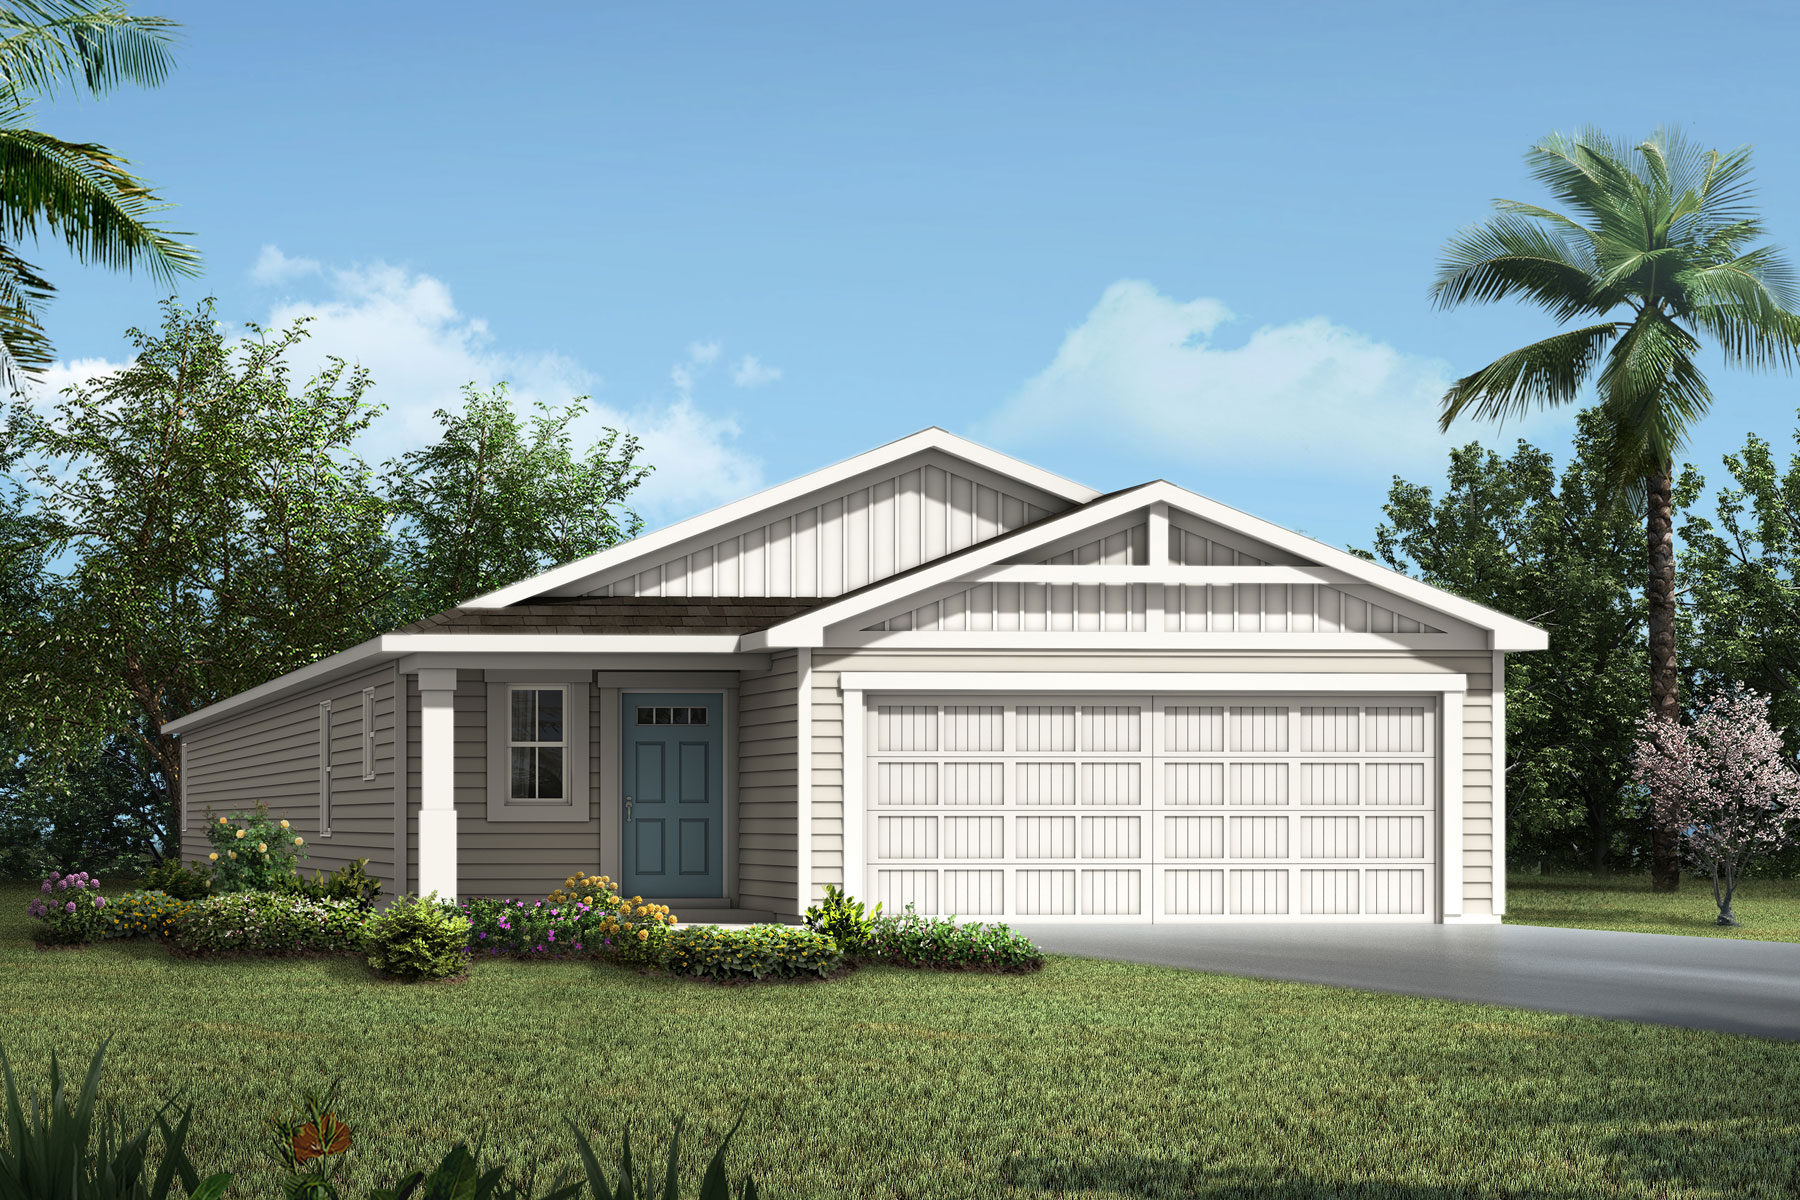 Barron Plan Elevation Front at Wells Creek in Jacksonville Florida by Mattamy Homes